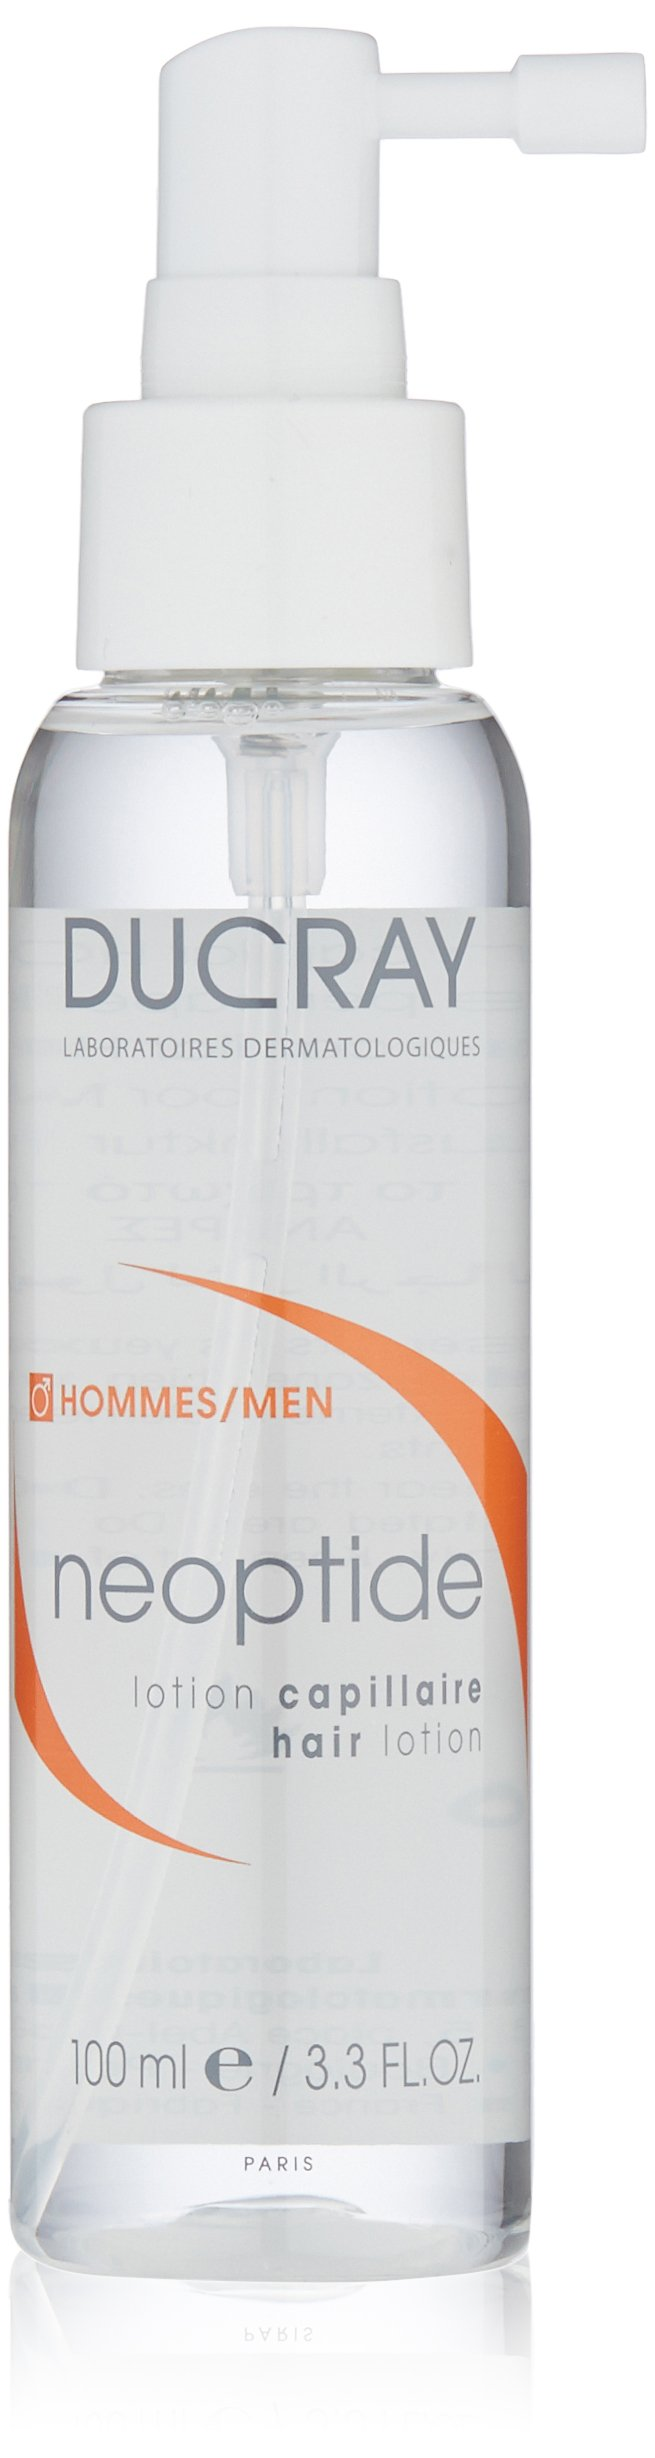 Ducray Neoptide Hair Lotion MEN, Chronic, Progressive Thinning Hair Treatment Spray, Reduces Appereance of Hair Loss, 3 x  1 oz.